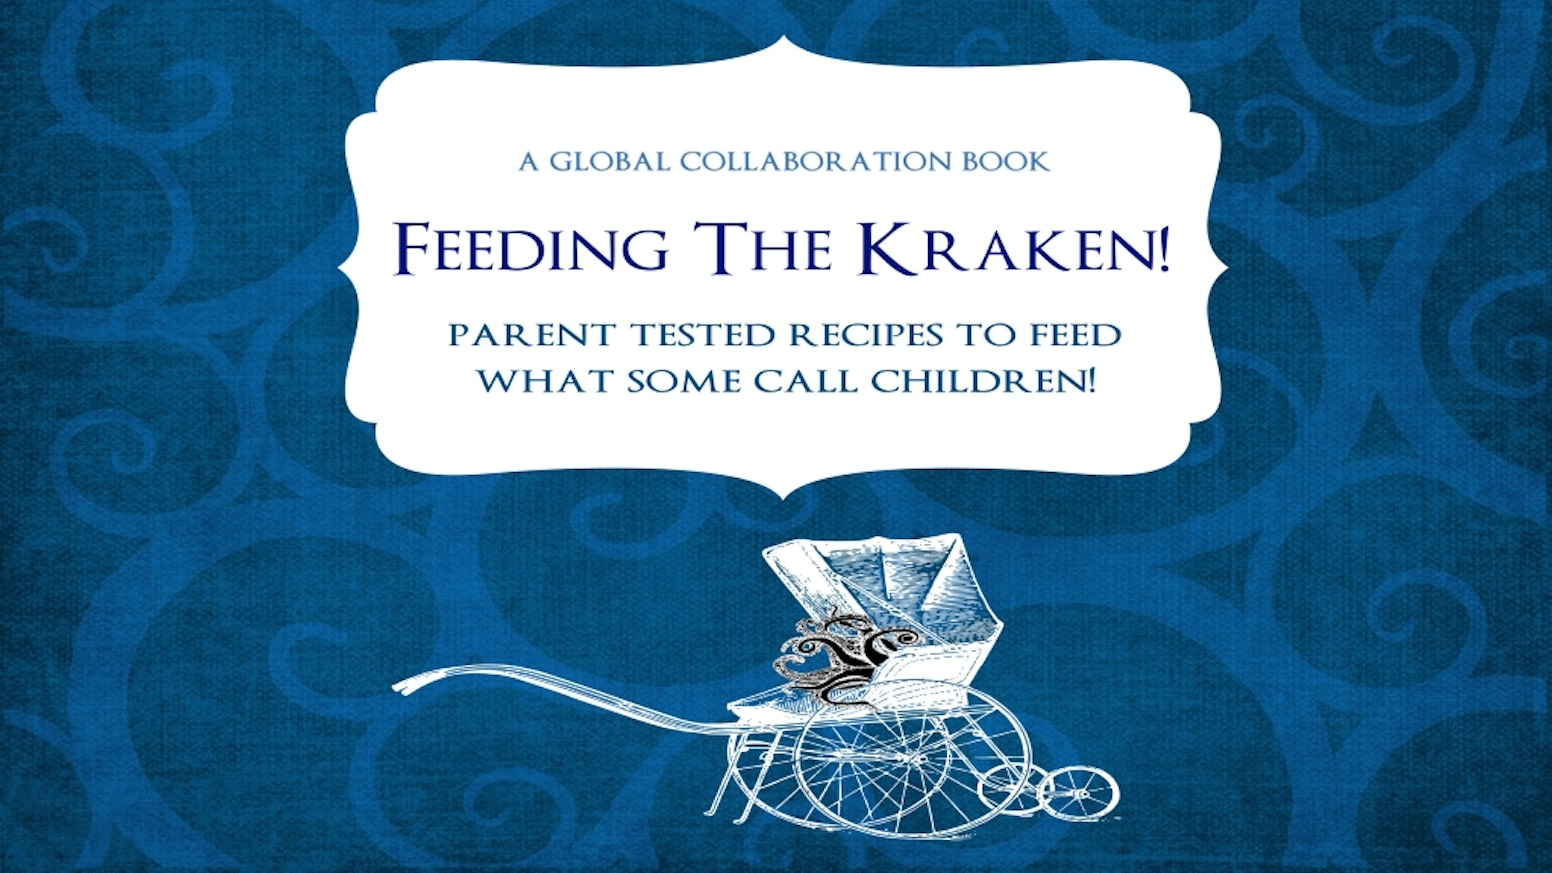 feeding the kraken a recipe book to feed children by jf garrard